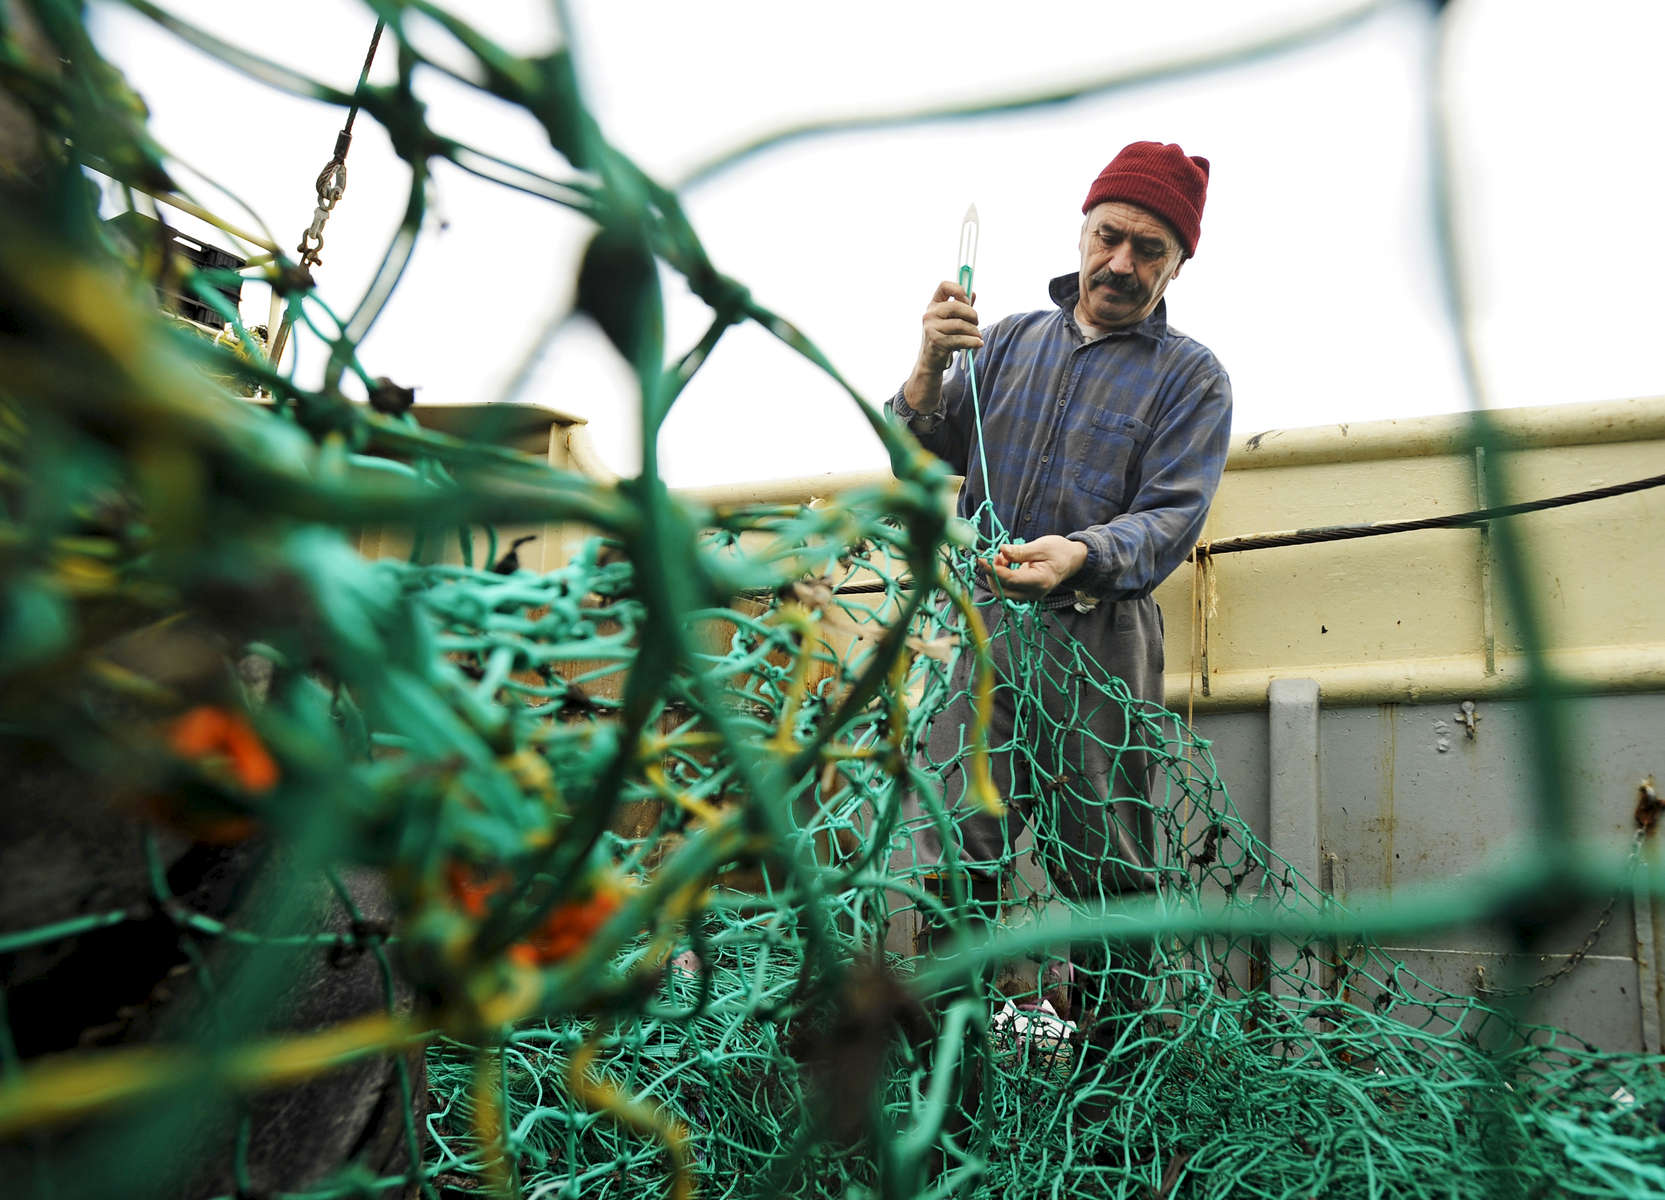 PROVINCETOWN -- 03/23/11 -- New Bedford fisherman Alfred Conde, 61, repairs an 80 by 50 foot section of net aboard 75-foot dragger Lady Patricia docked at MacMillan Pier. The crew's brand new net became all chewed up when it got caught in the mud as they fished for haddock, cod, pollock and sole.Cape Cod Times/Christine Hochkeppel 032311ch05